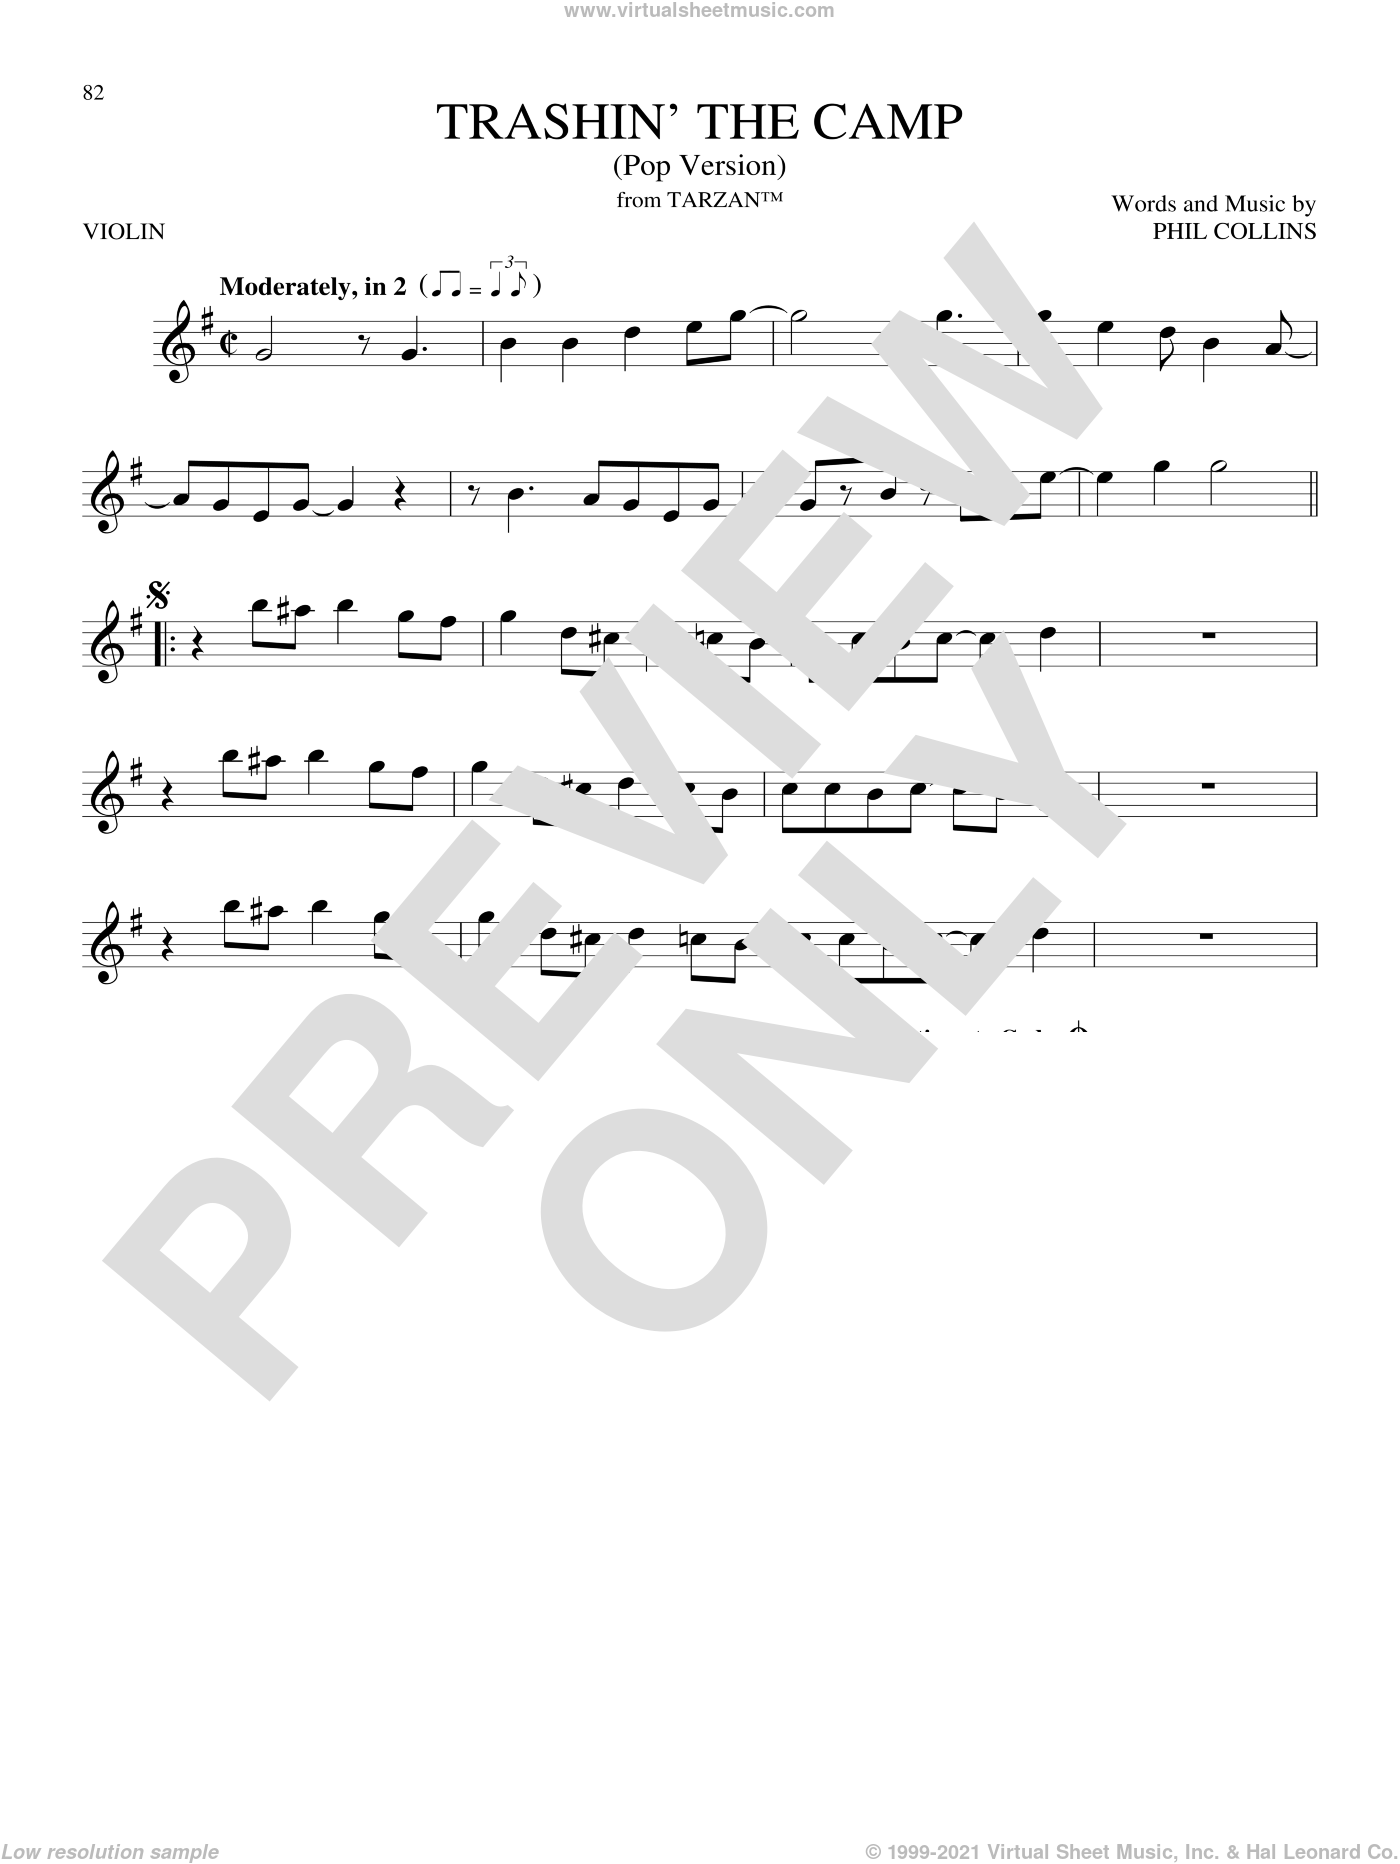 Trashin' The Camp (Pop Version) sheet music for violin solo by Phil Collins, intermediate skill level